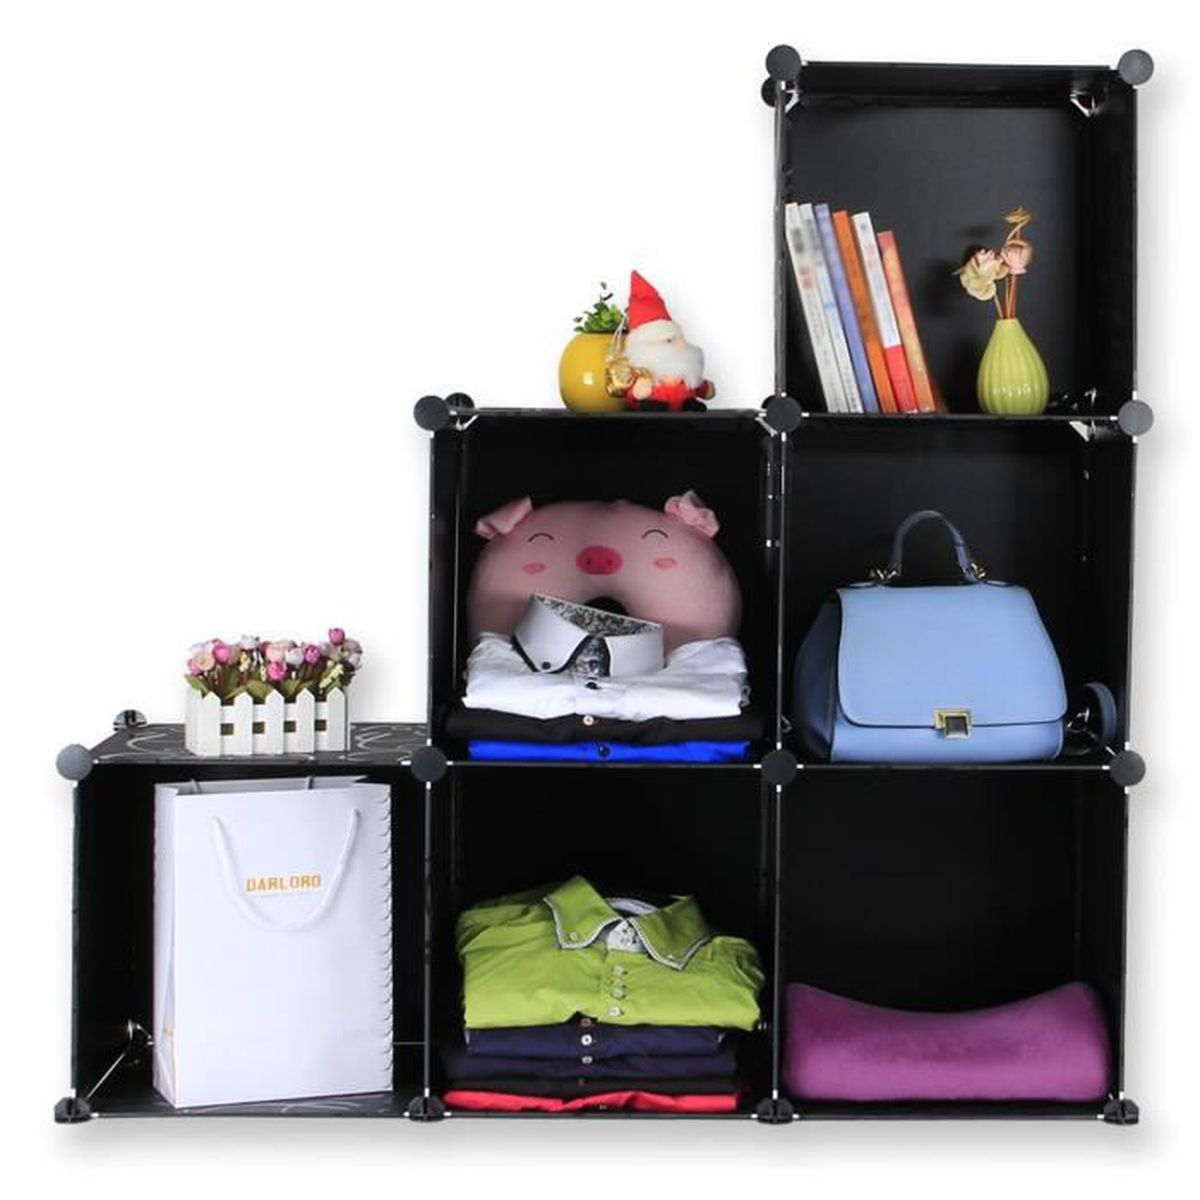 sungle diy armoire plastique noir tag re plastique meuble de rangement plasmatique penderie. Black Bedroom Furniture Sets. Home Design Ideas